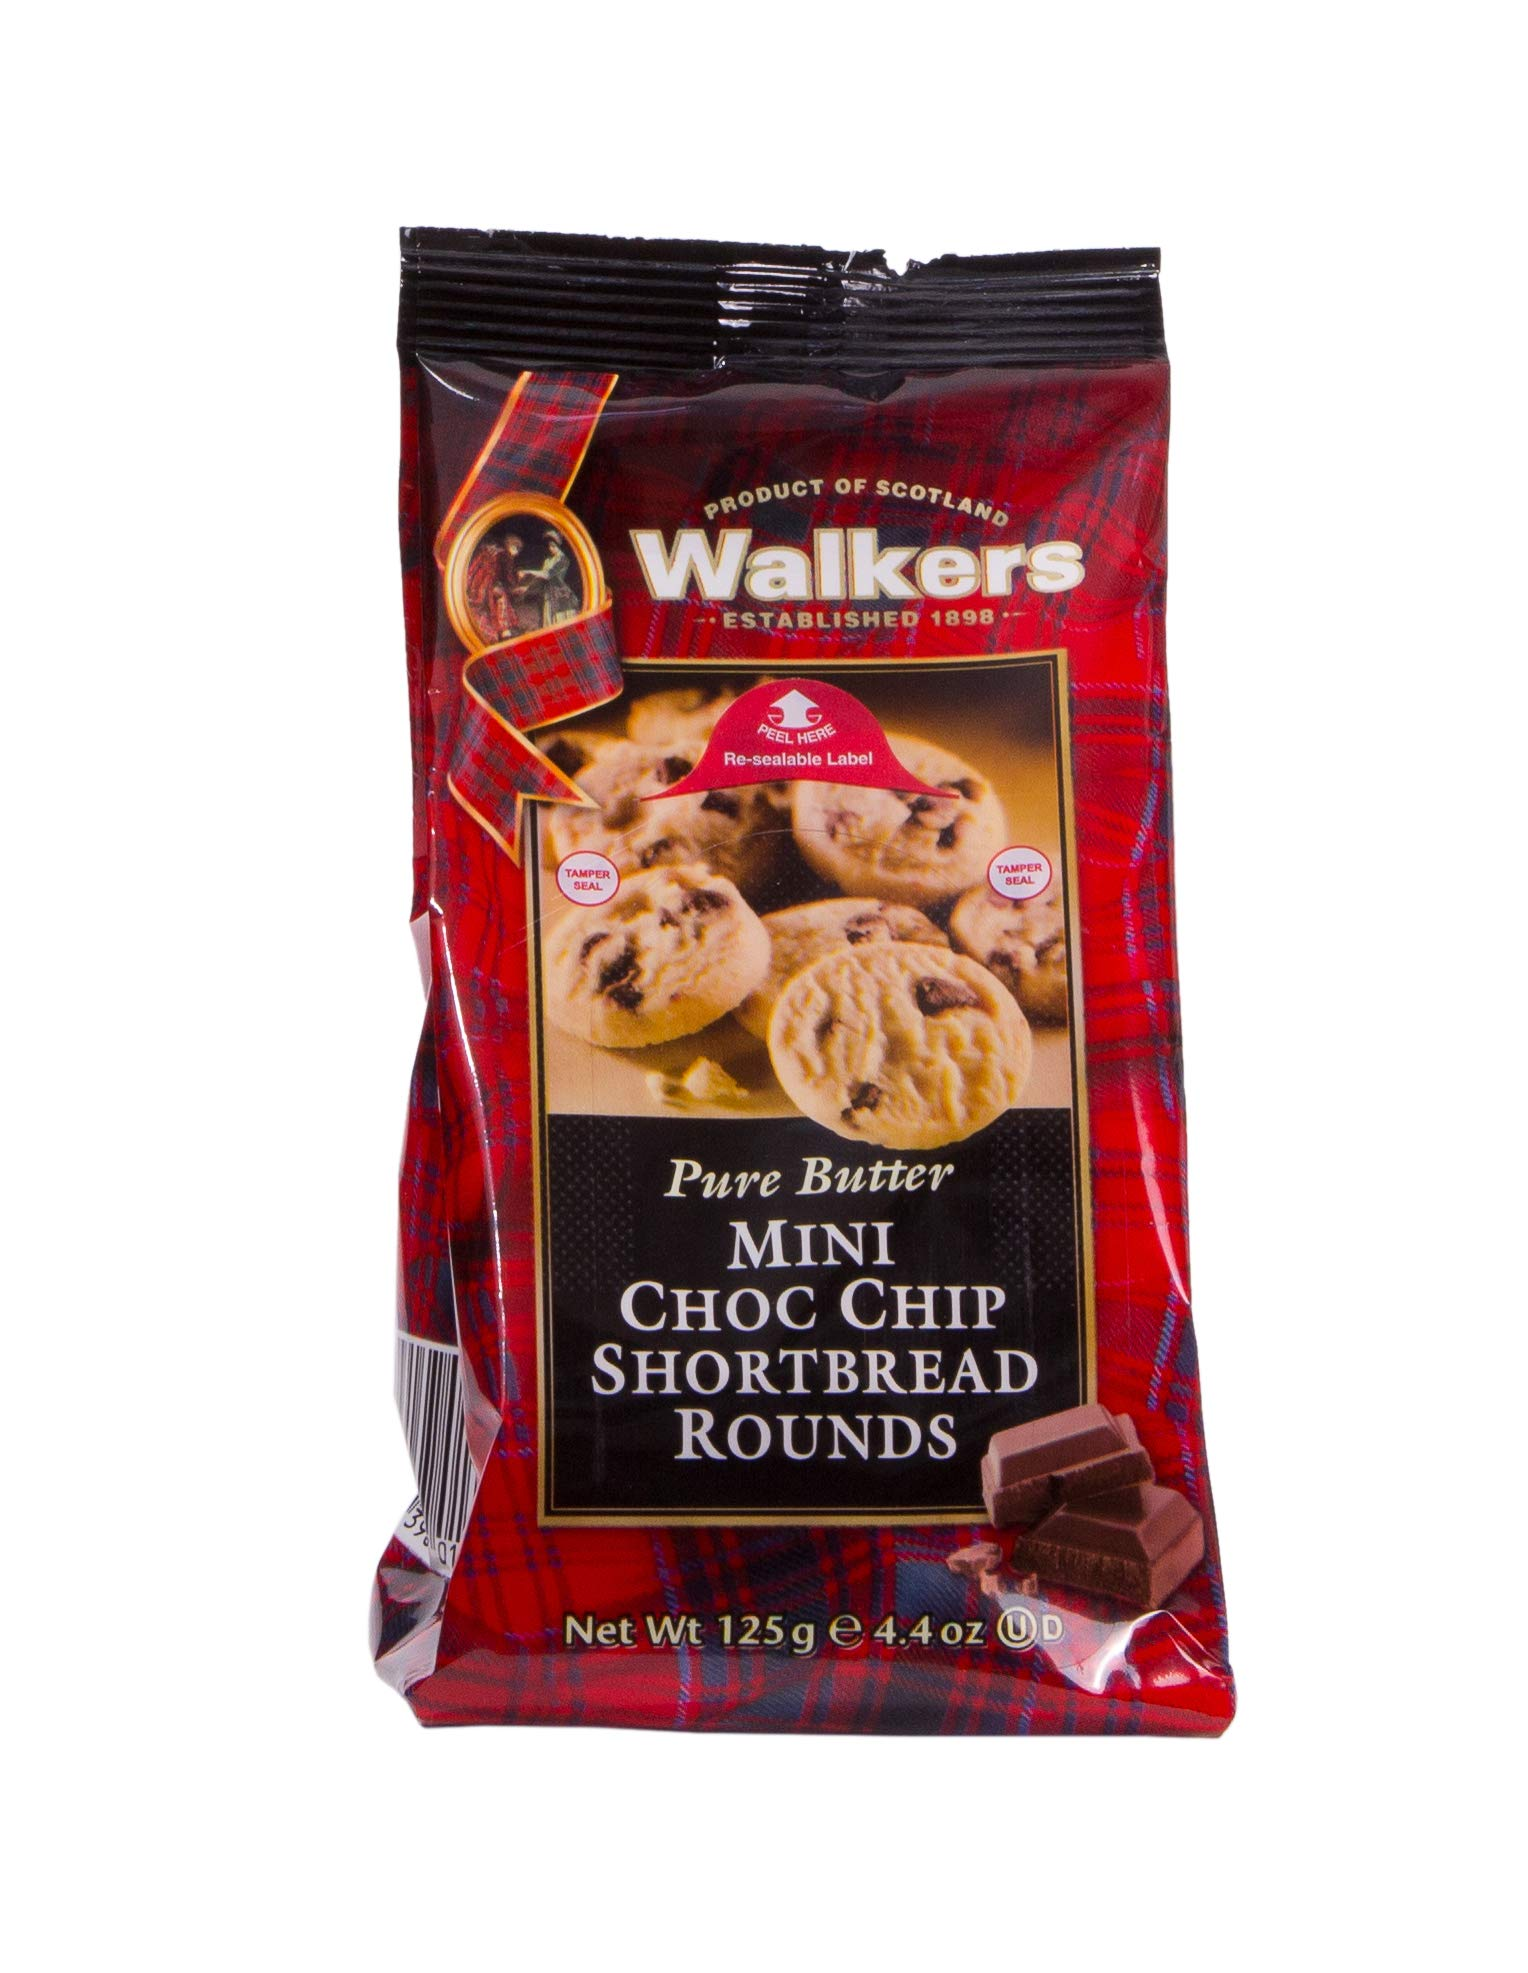 Walkers Shortbread Mini Chocolate Chip Rounds, Traditional Pure Butter Shortbread Cookies with Chocolate Chips, 4.4 oz Bags (6 Bags) by Walkers Shortbread